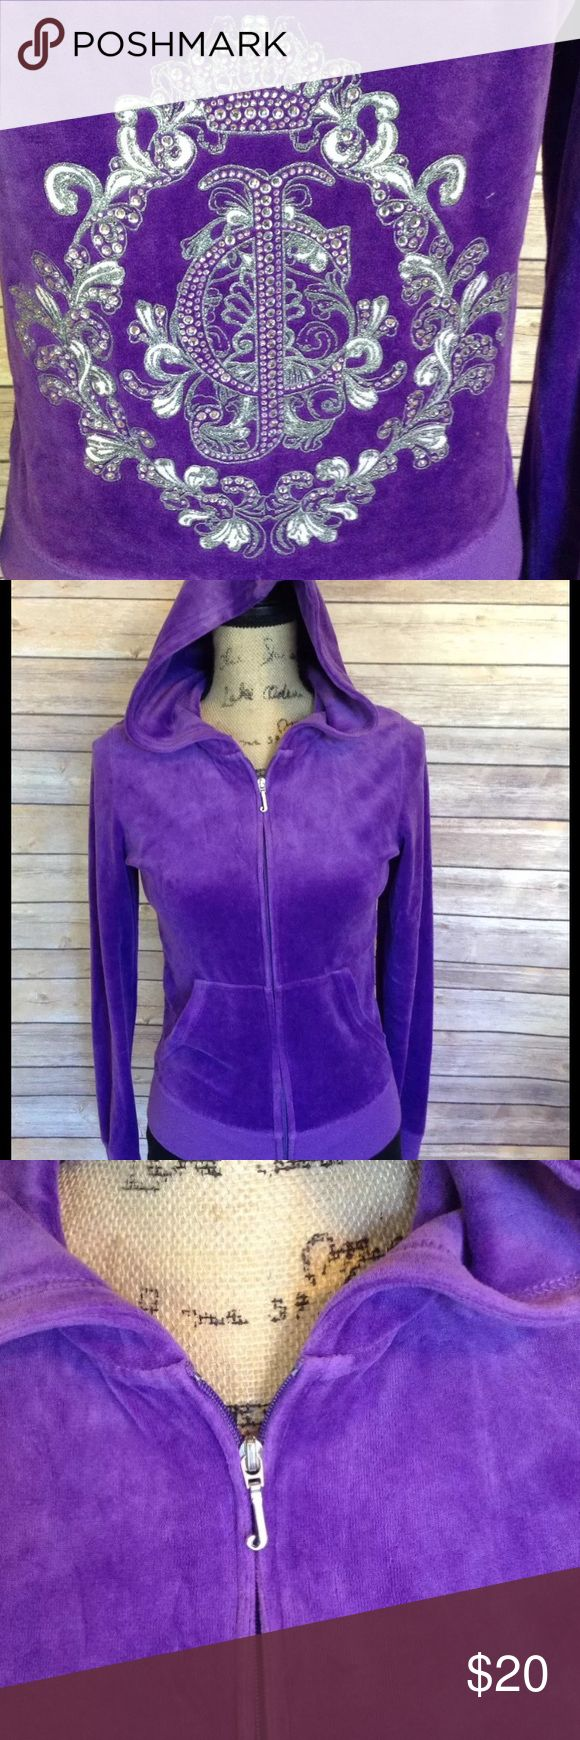 "Juicy Couture size medium purple zip up hoodie Pre-owned Juicy Couture women's size medium purple zip up hoodie. Back has JC with decorative scroll around it embroidered with glitter and bling. Excellent used condition. No rips holes or stains. 78% cotton 22% polyester.   Measurements:  Armpit to armpit- 17""  Armpit to sleeve- 20""  Length- 23""   I ship fast! Pay before 4:30pm Monday thru Friday and I will ship the same day!  Thank you for looking!  Check out my other items! Juicy Couture…"